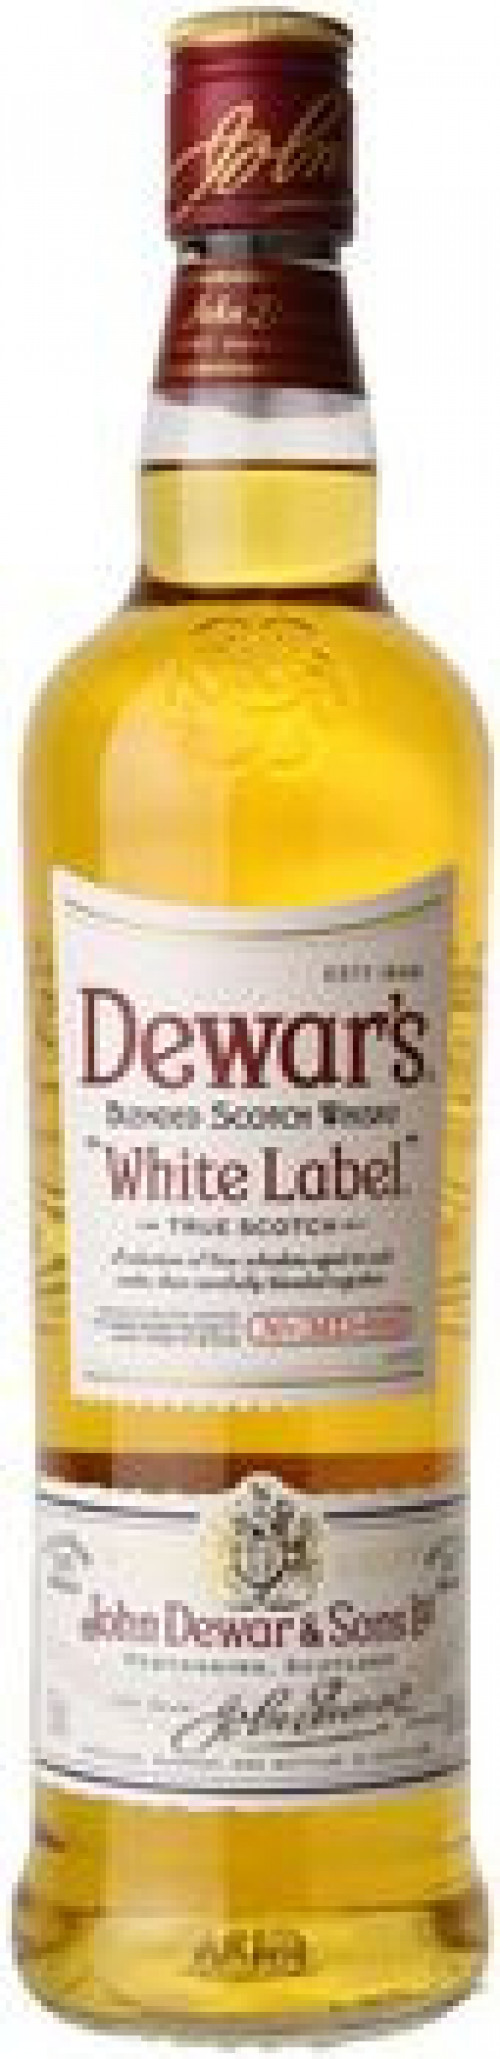 Dewar's White Label Blended Scotch 750ml